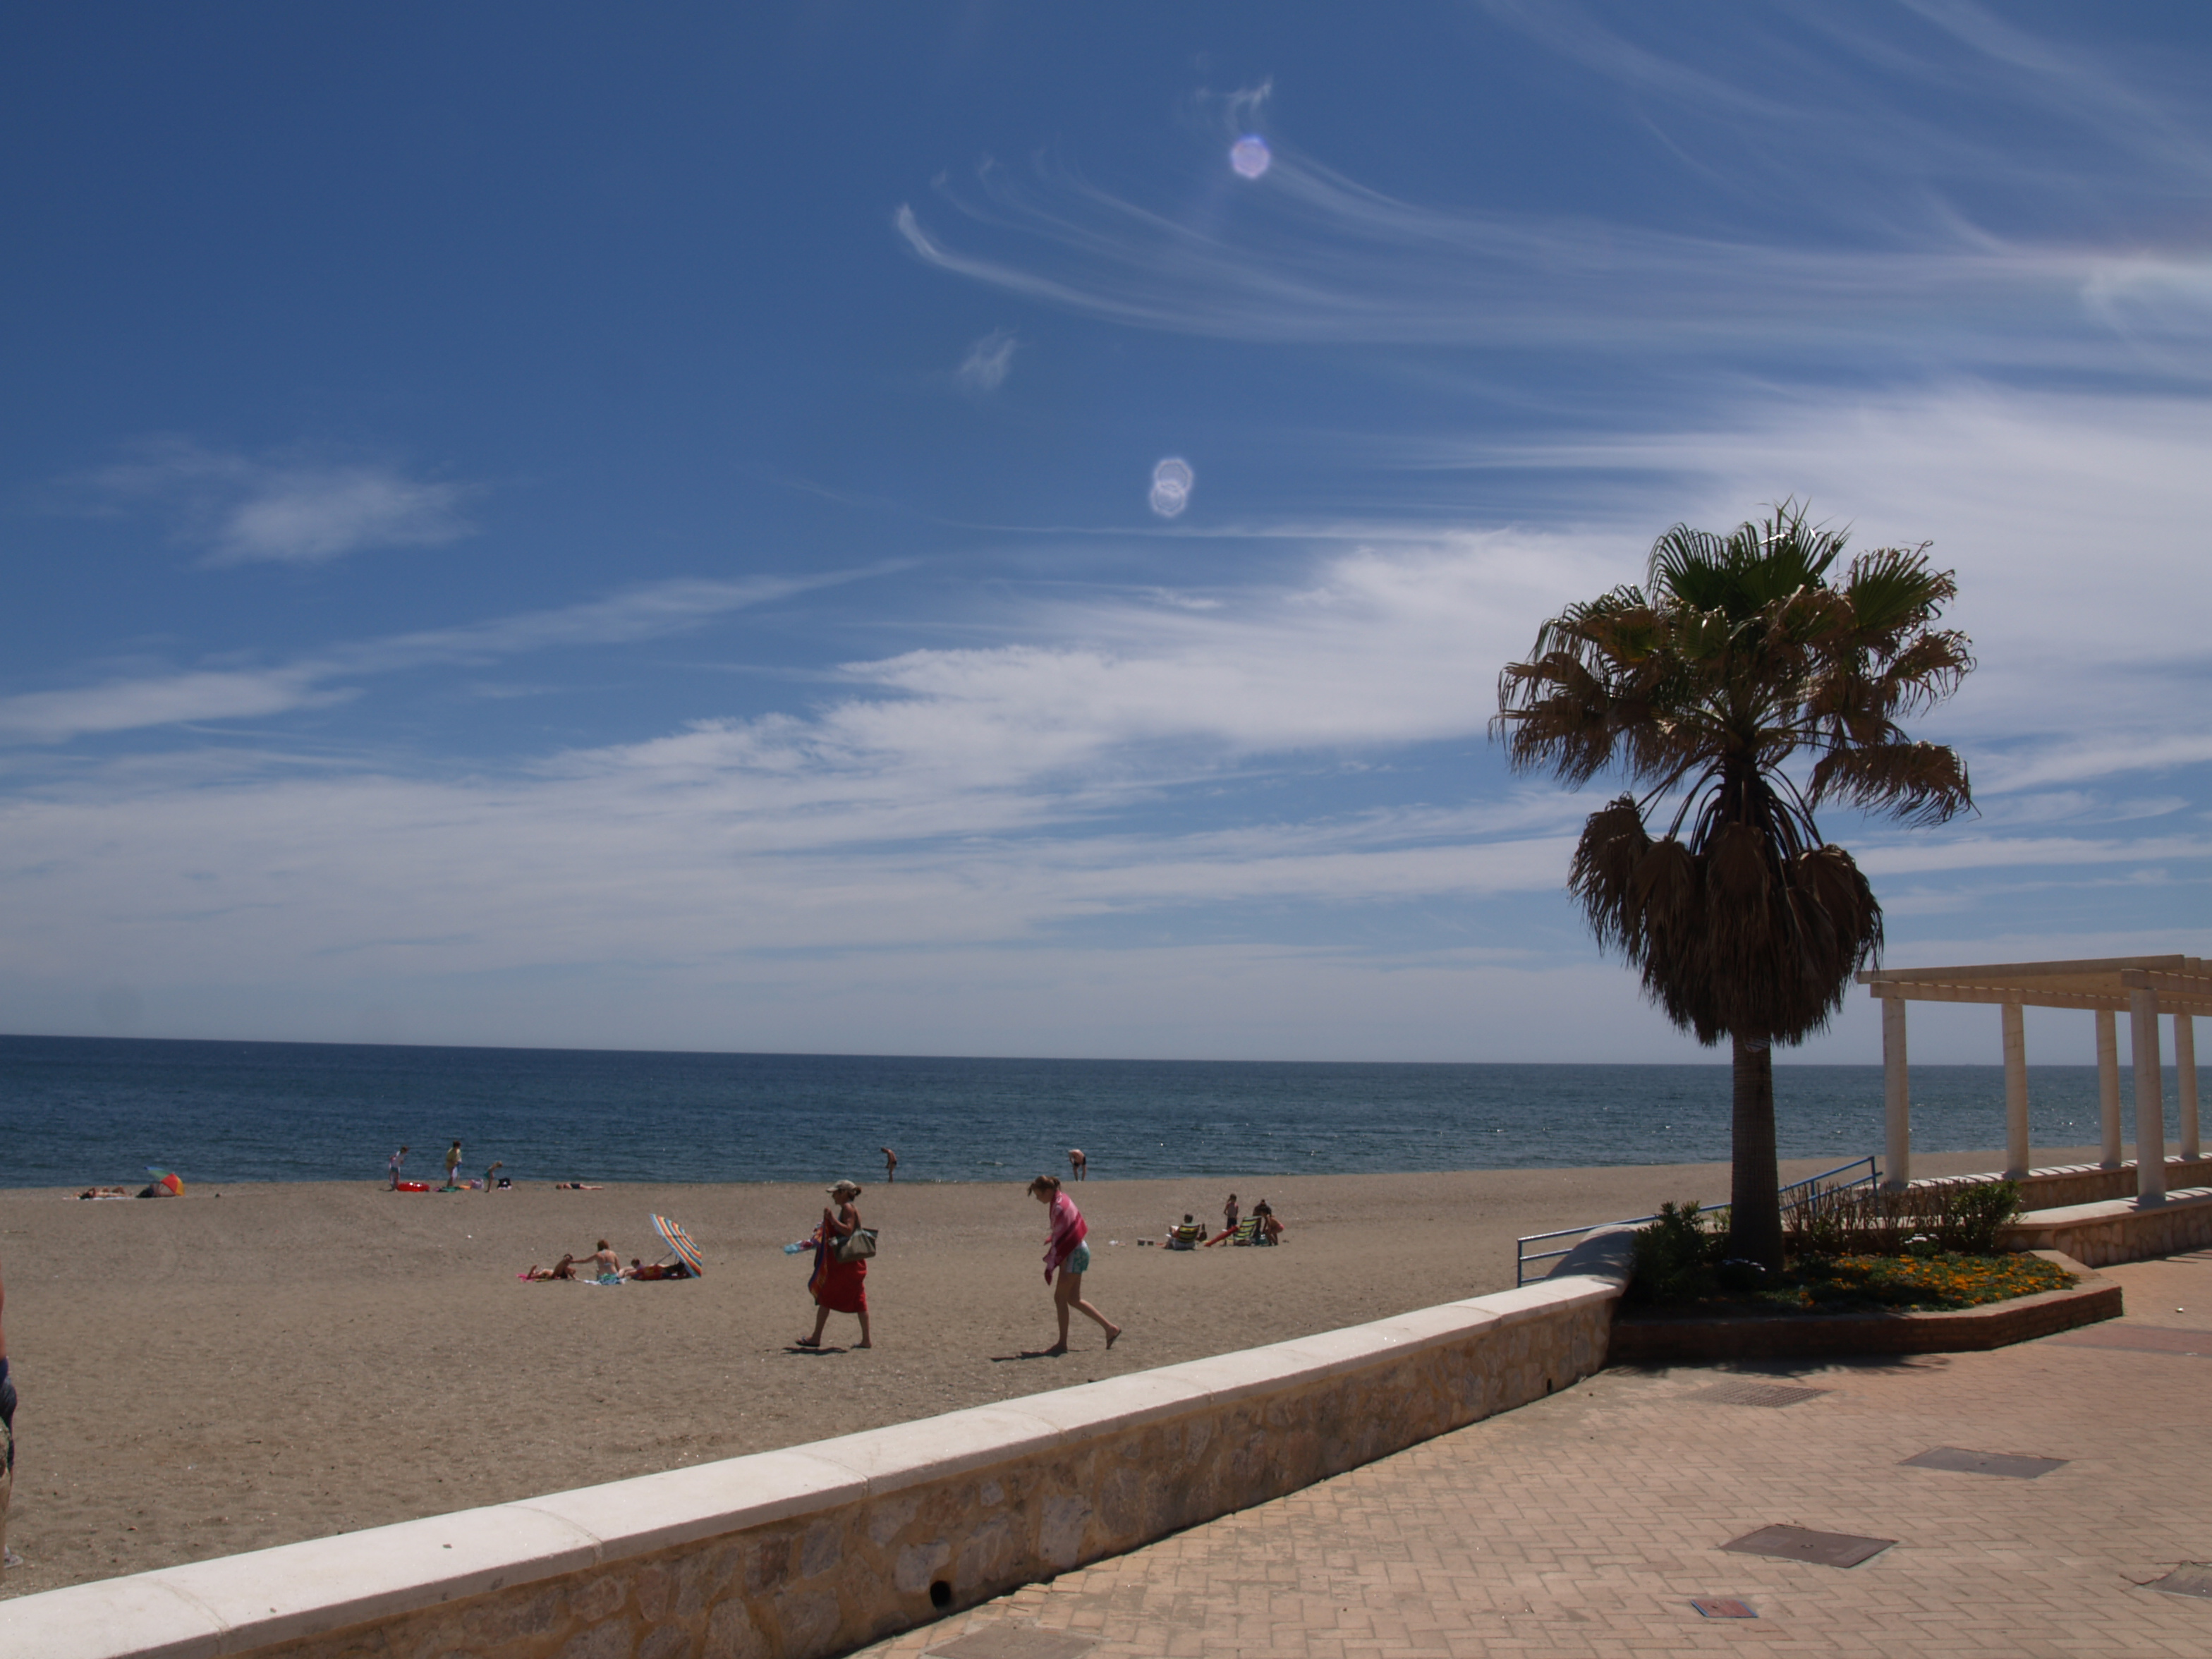 Fuengirola beach from promenade 57 - April 29, 2008